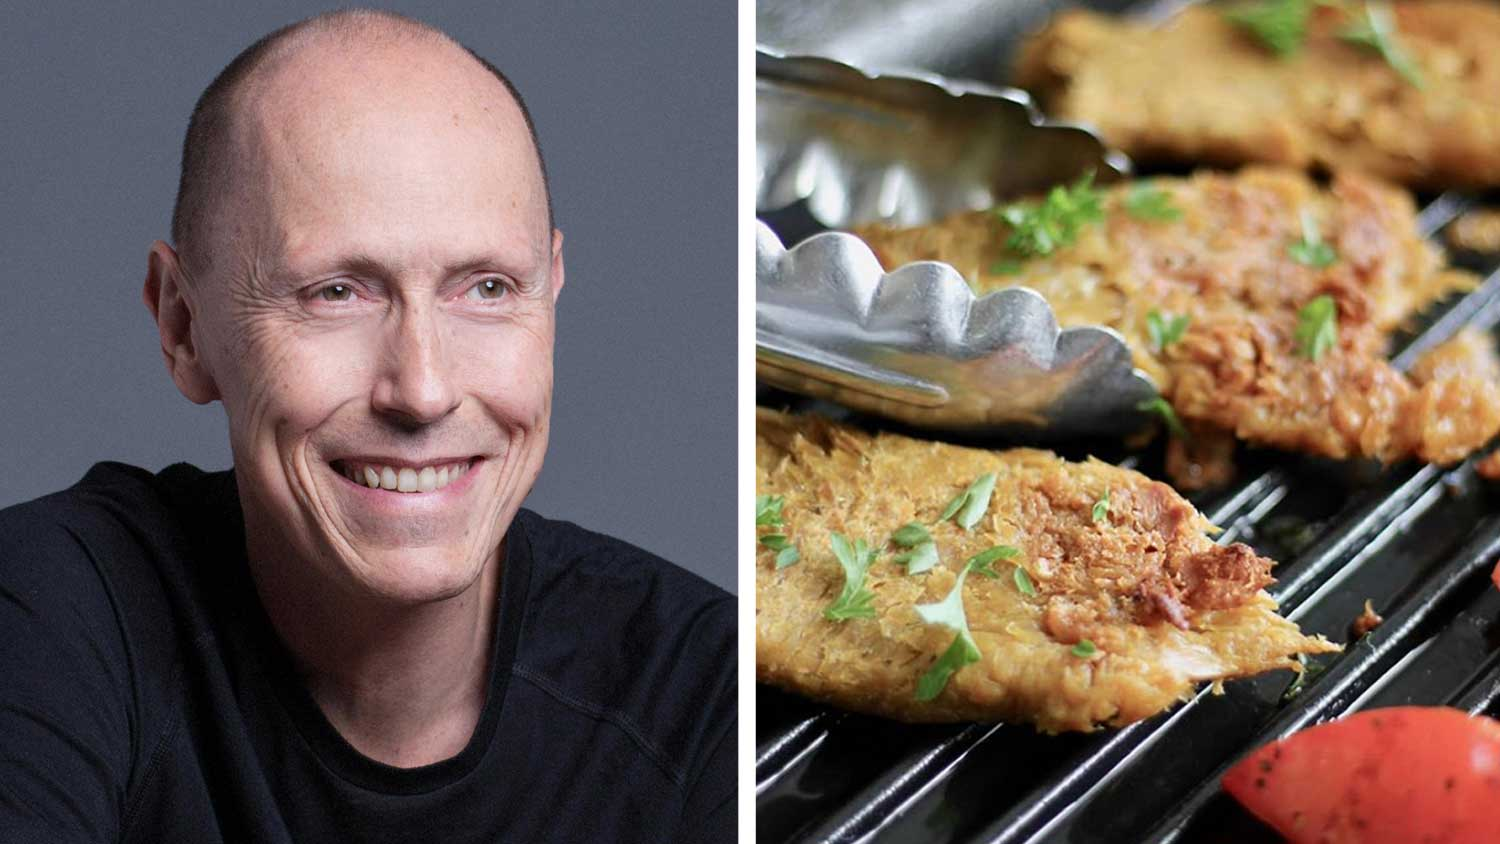 Why This Investor Is Betting Big Money on Vegan Chicken